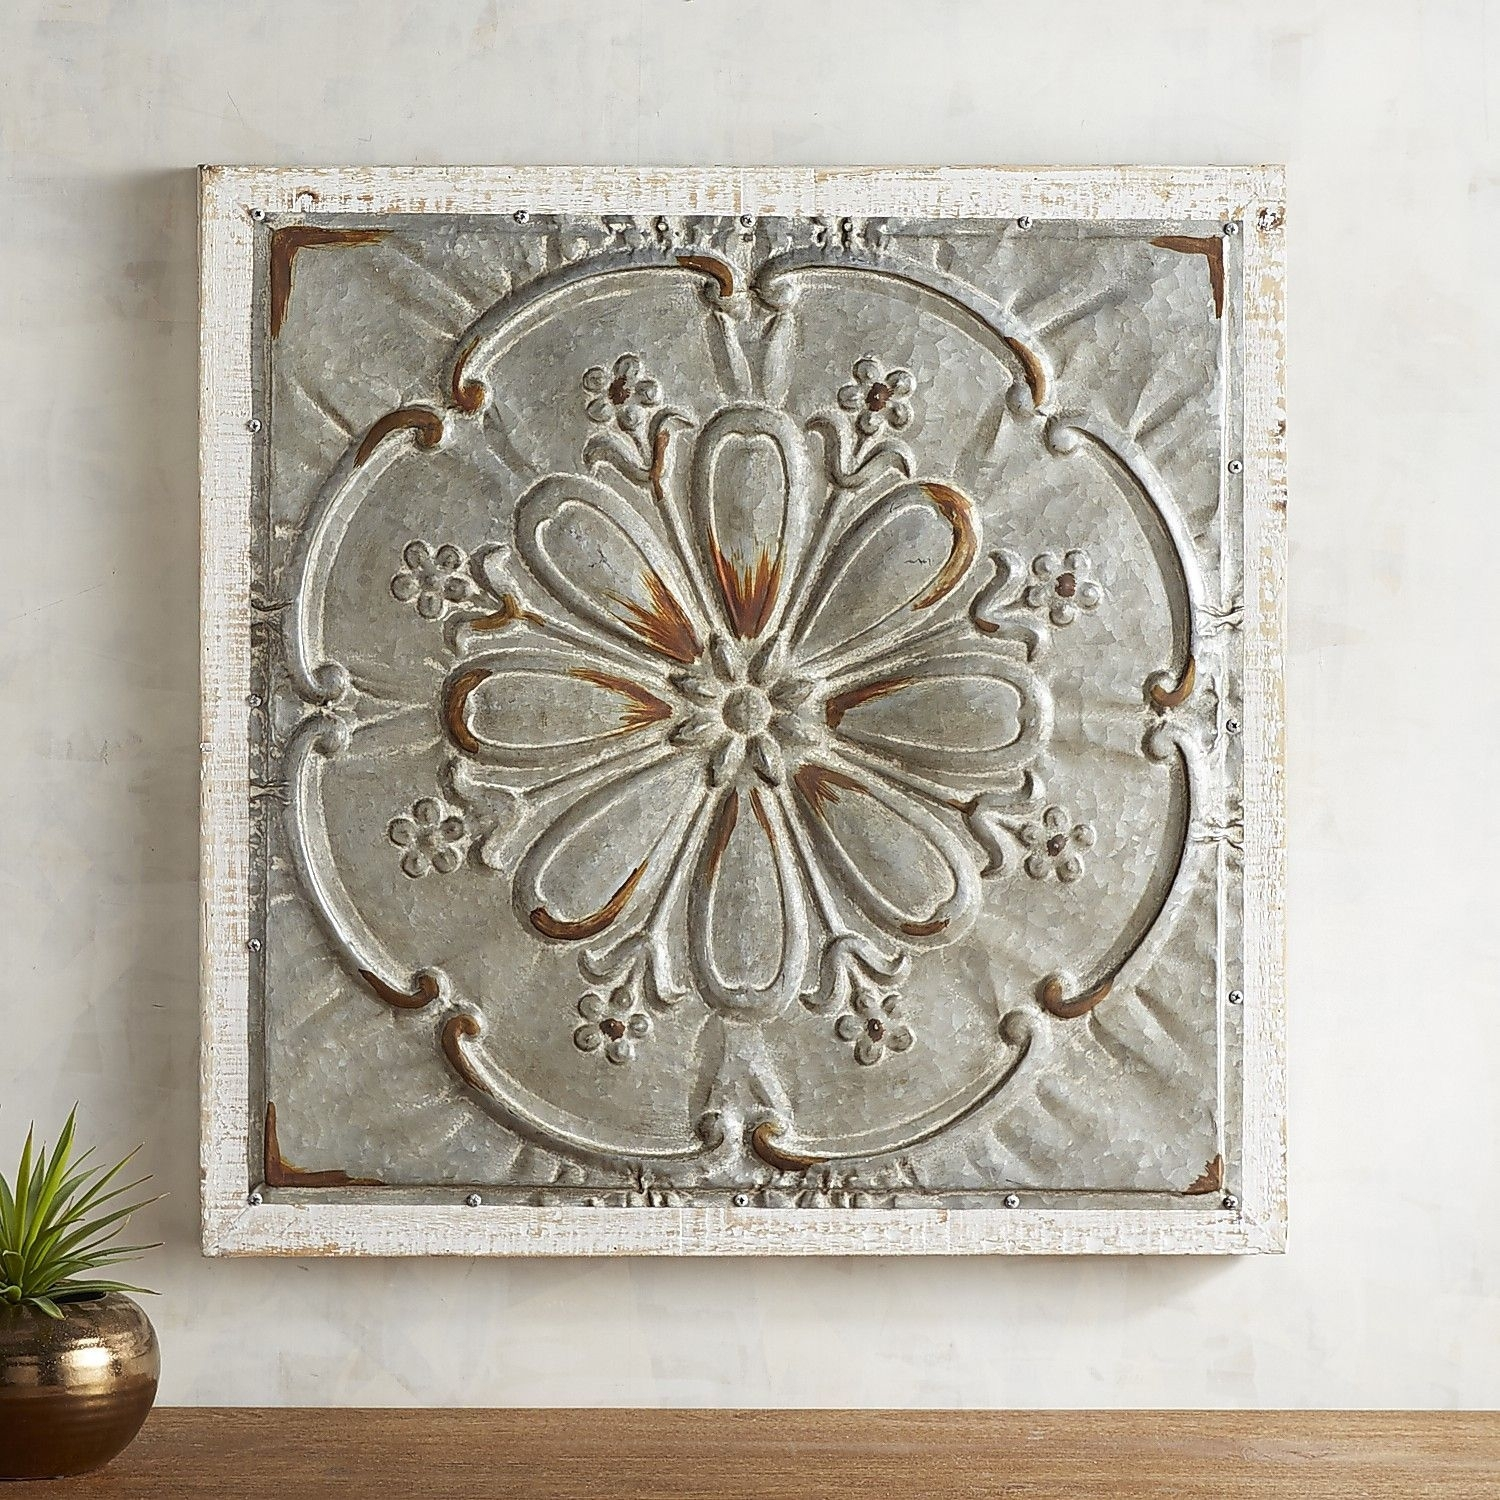 Whitewashed Medallion Wall Decor | Pinterest | Wall Decor, Walls And Inside Most Up To Date Medallion Wall Art (Gallery 8 of 20)